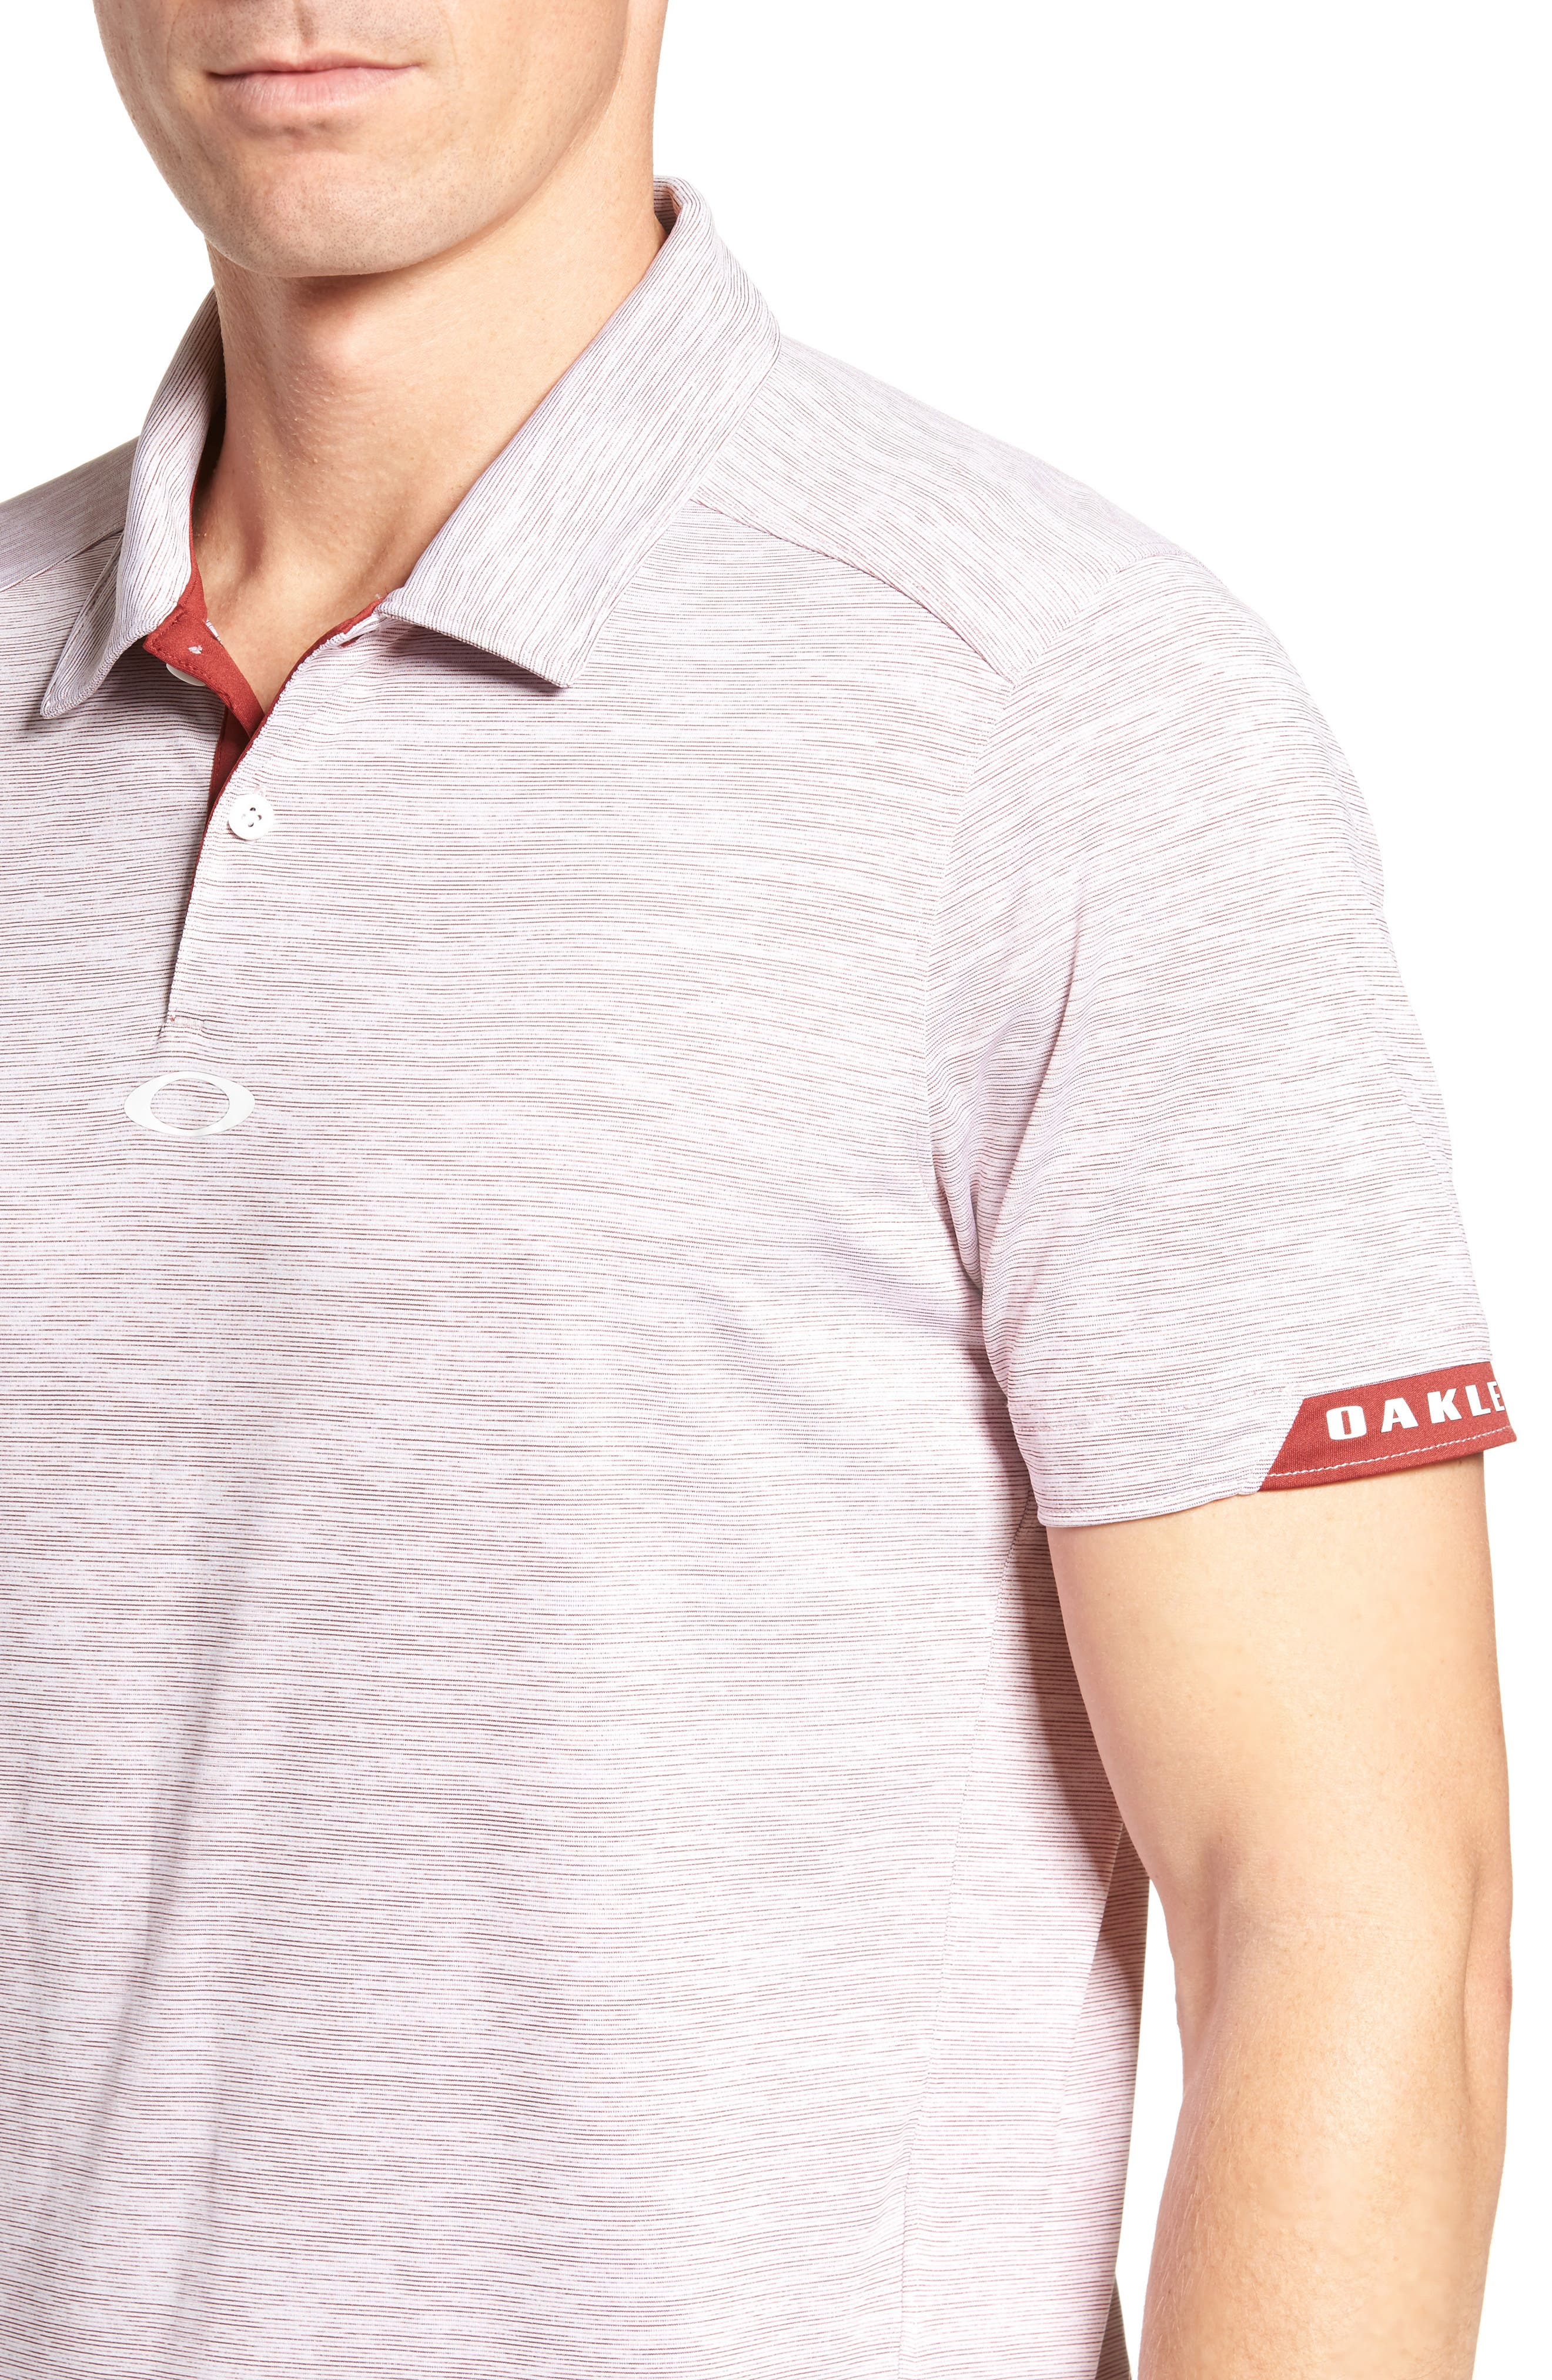 Gravity Polo Shirt,                             Alternate thumbnail 4, color,                             Iron Red